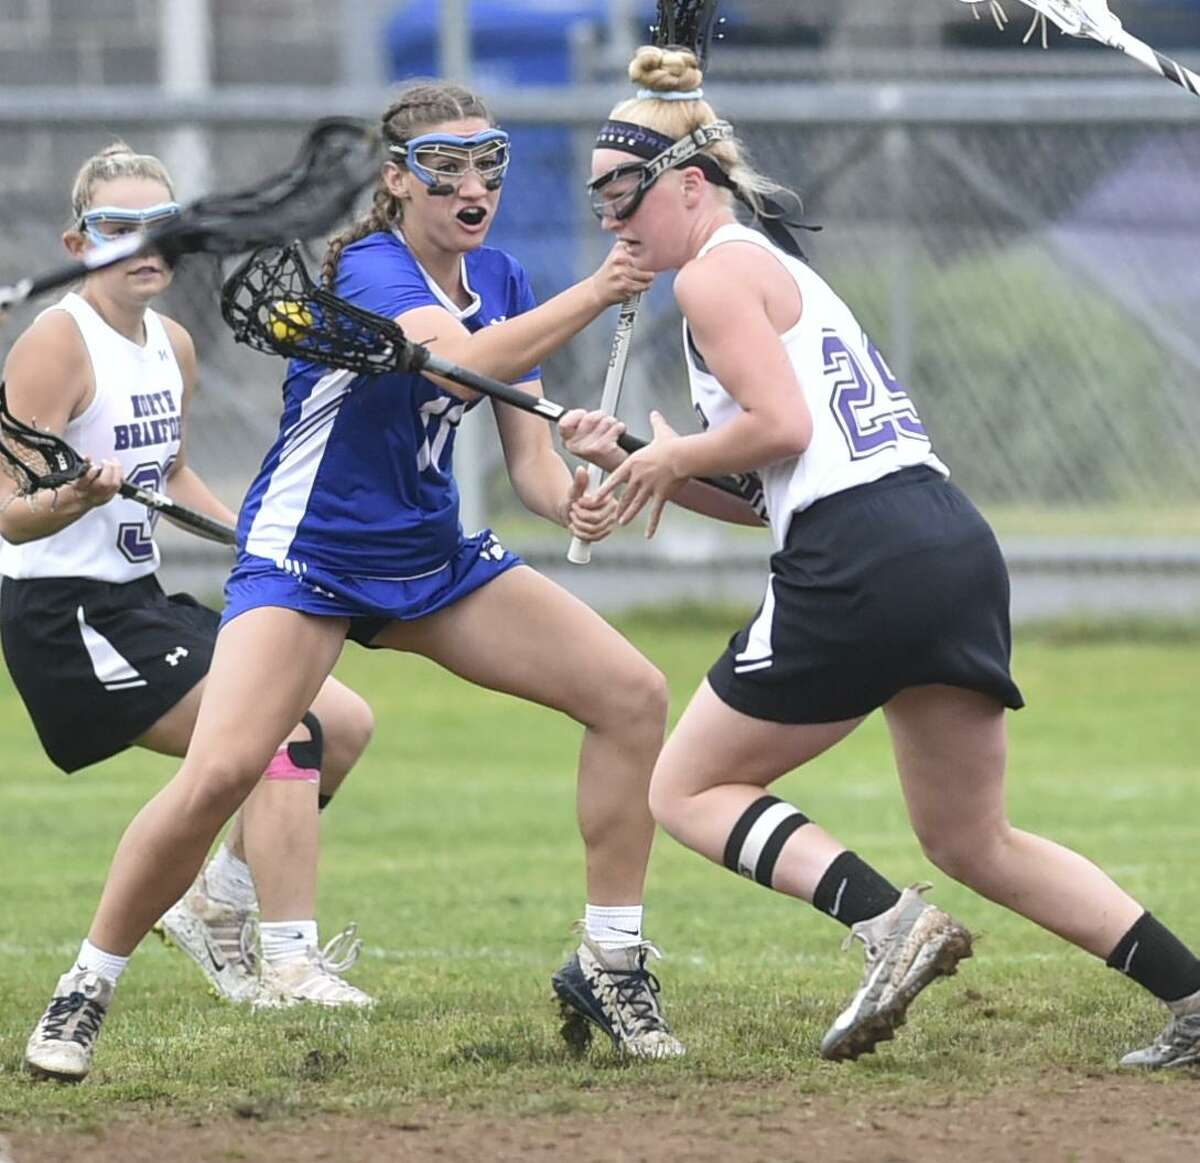 North Branford, Connecticut - Tuesday, May 28, 2019: North Branford H.S. vs. Old Lyme H.S. first half action during the Class S First Round CIAC 2019 State Girls Lacrosse Tournament Tuesday at North Branford H.S.